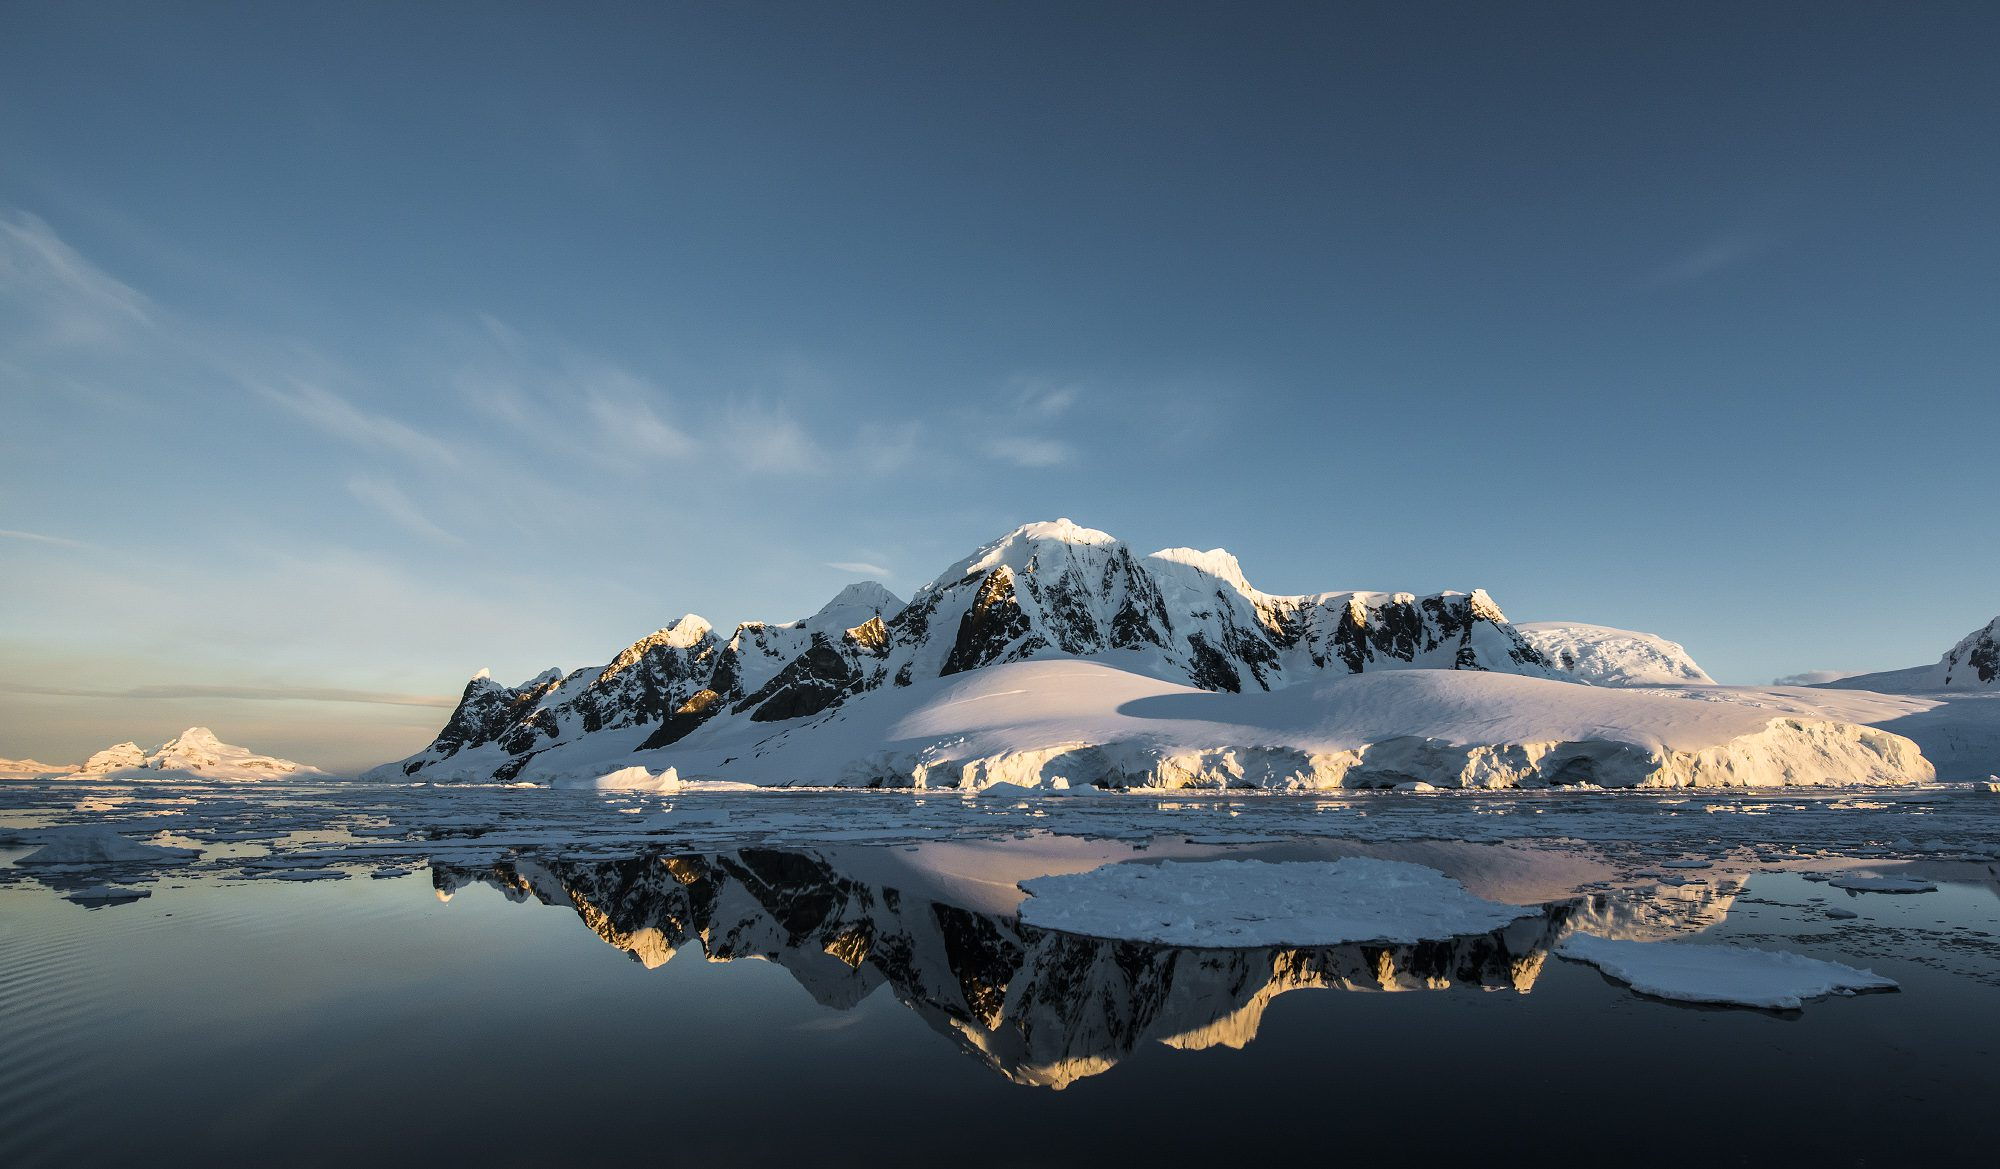 mirror reflection in the icy waters of snow capped mountains on the Antarctic Peninsula